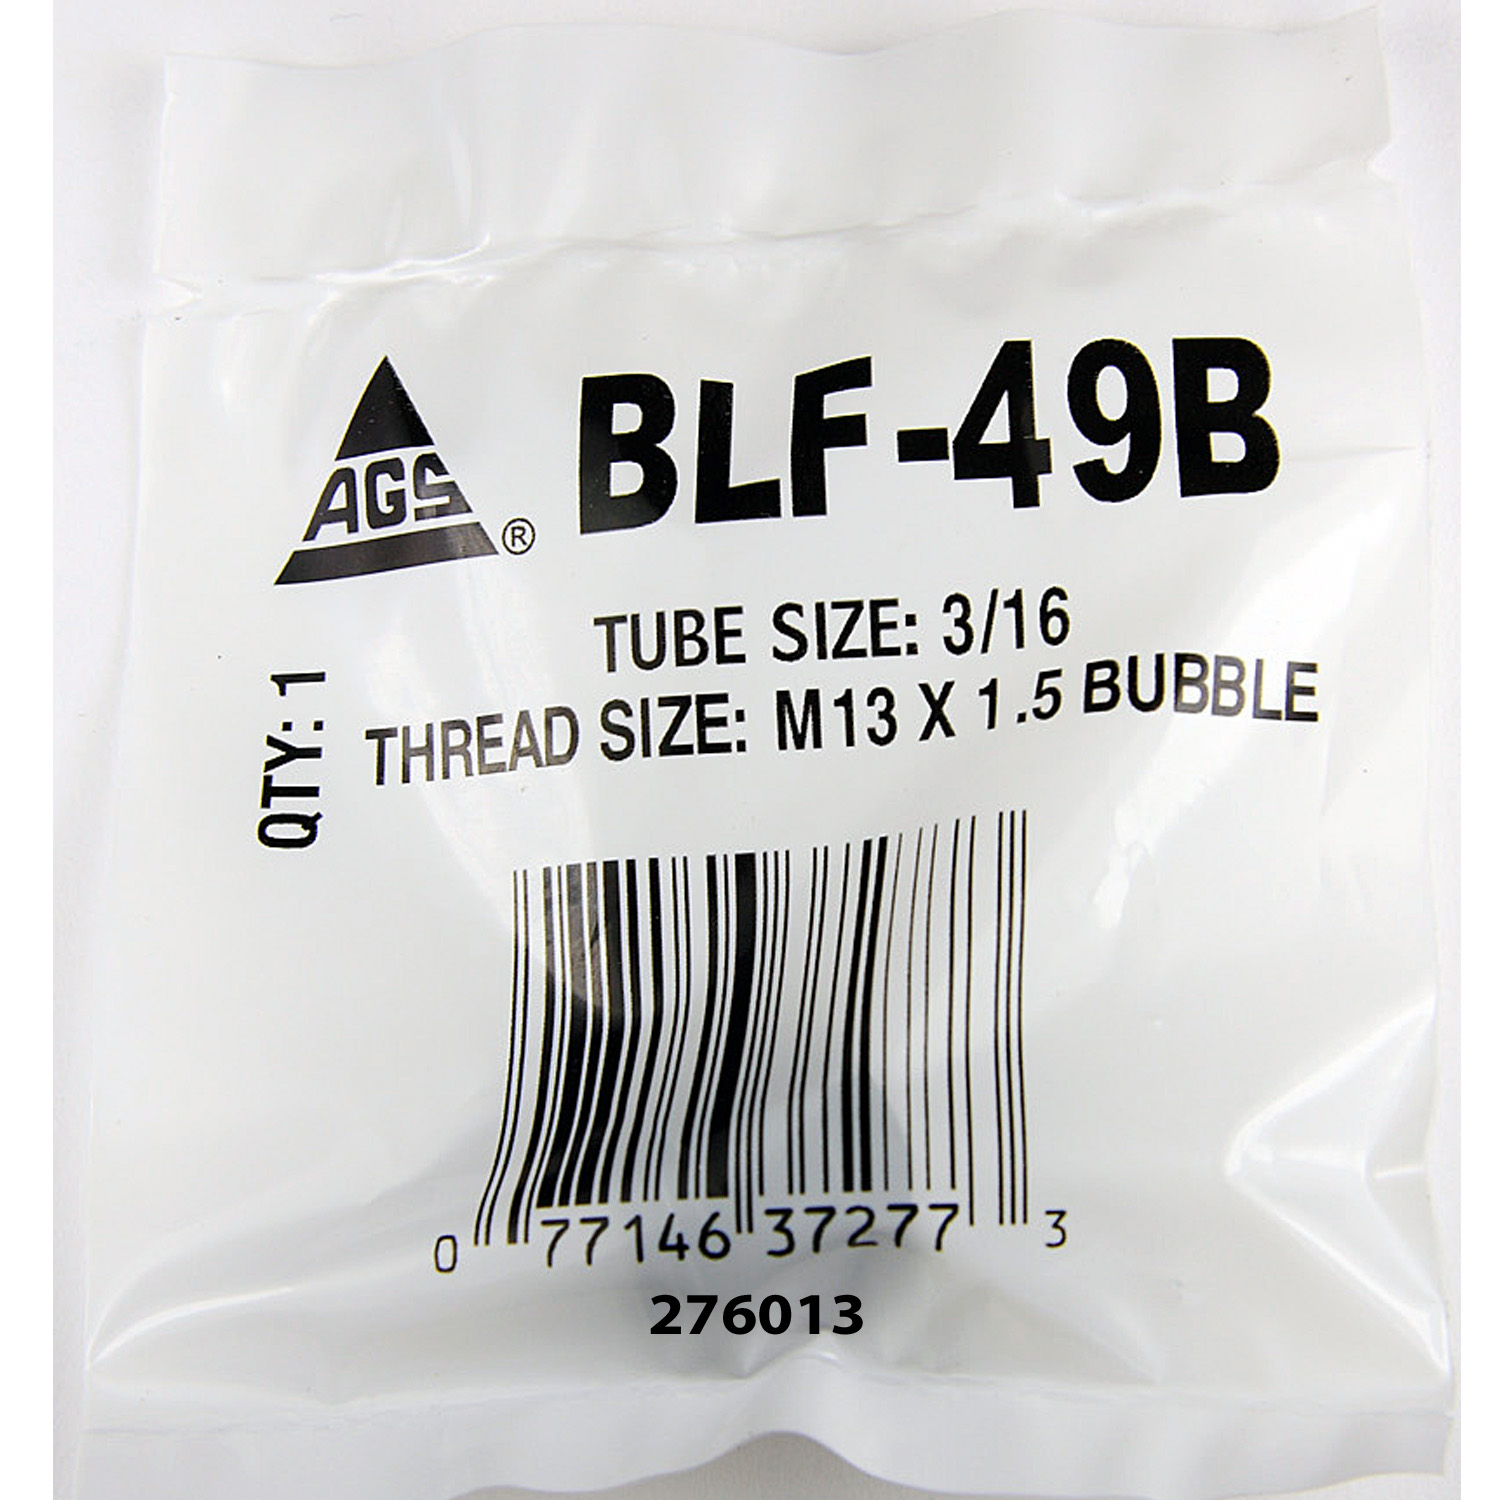 BLF-49B AGS Tube End Fitting Nut 3/16 Inch Tube Size M13 x 1.5 Bubble